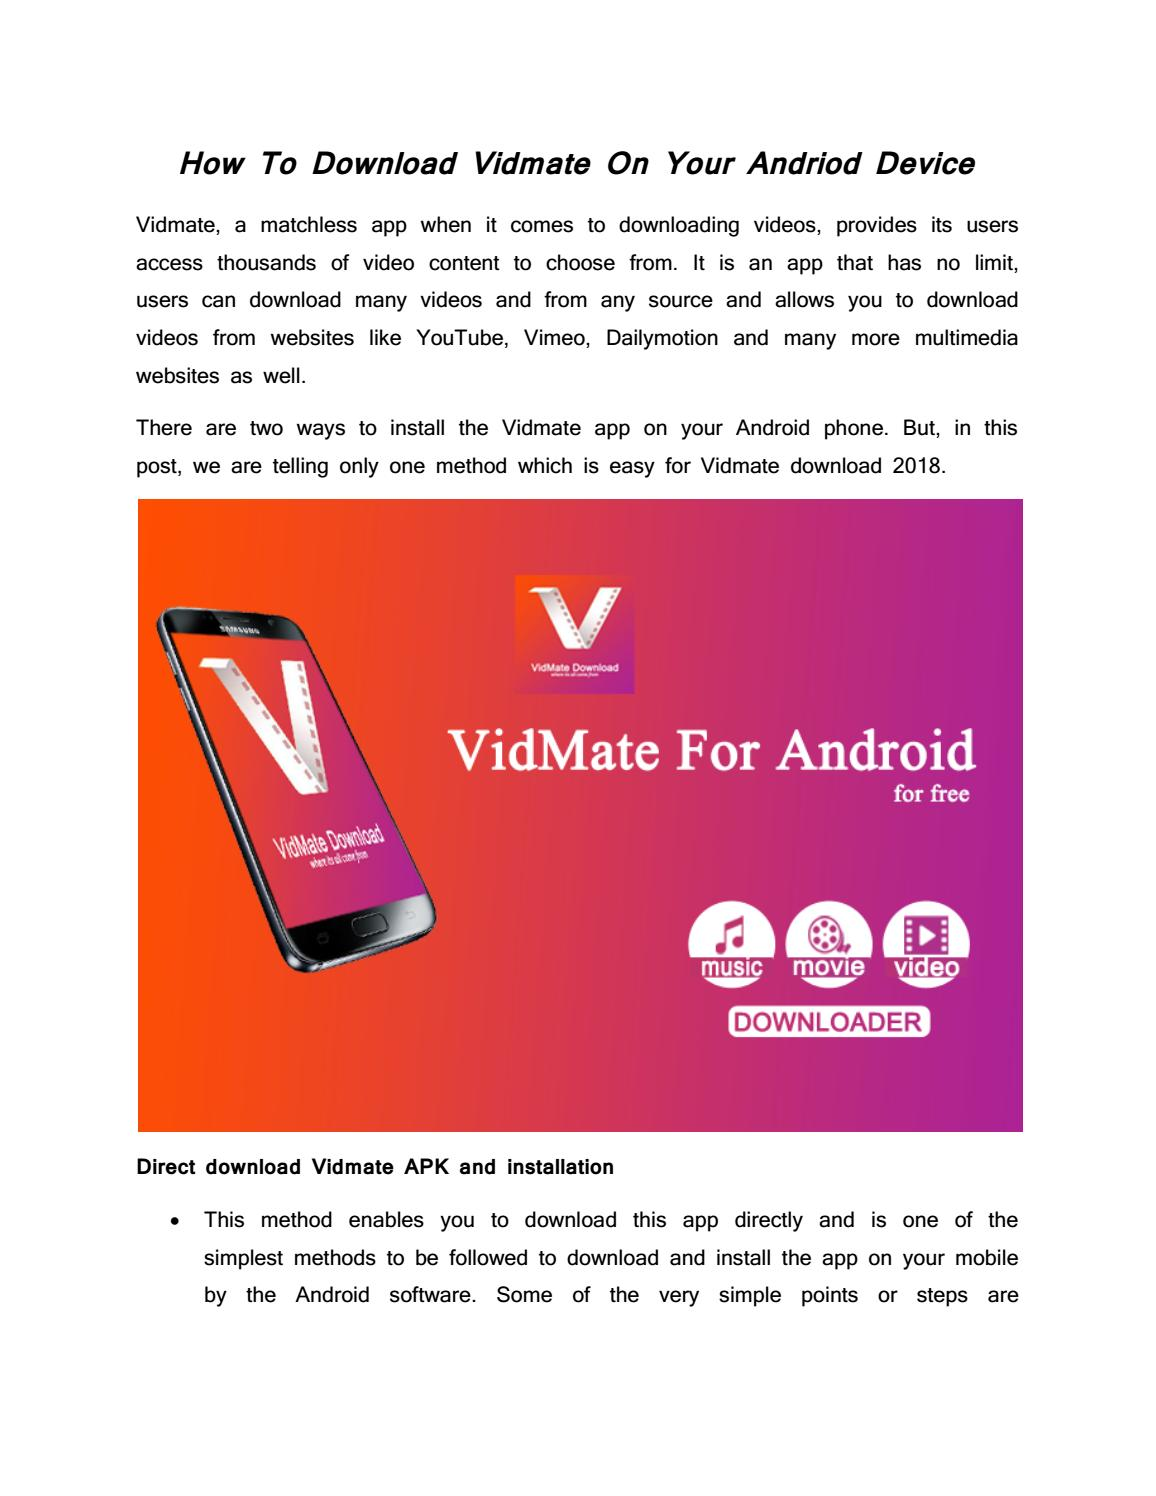 How To Download Vidmate On Your Andriod Device by